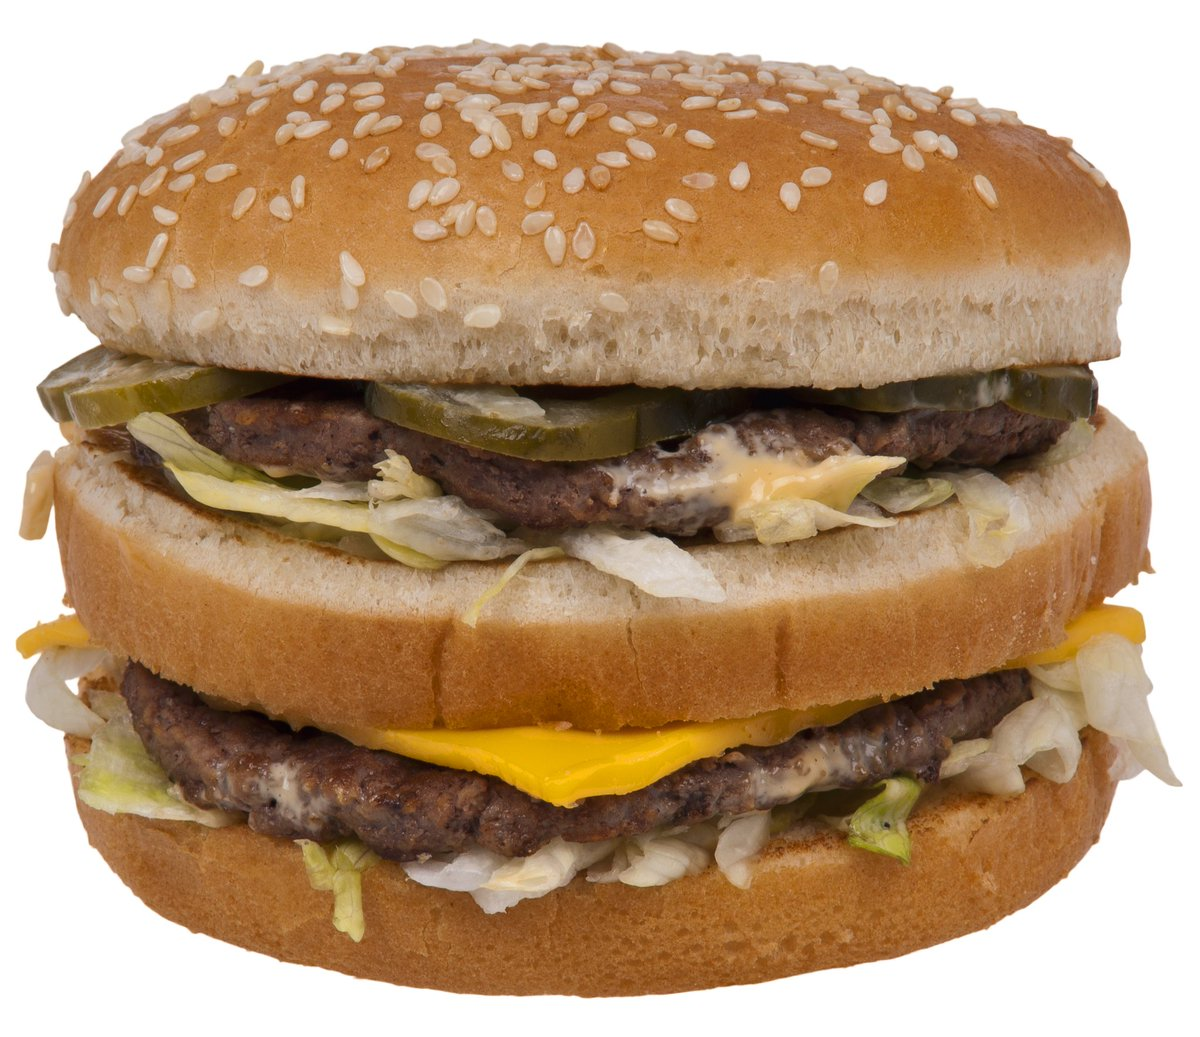 Is a hamburger and a sandwich the same thing @Official_TVC @The7thLevel #ThursdayThoughts #FoodTravelChat